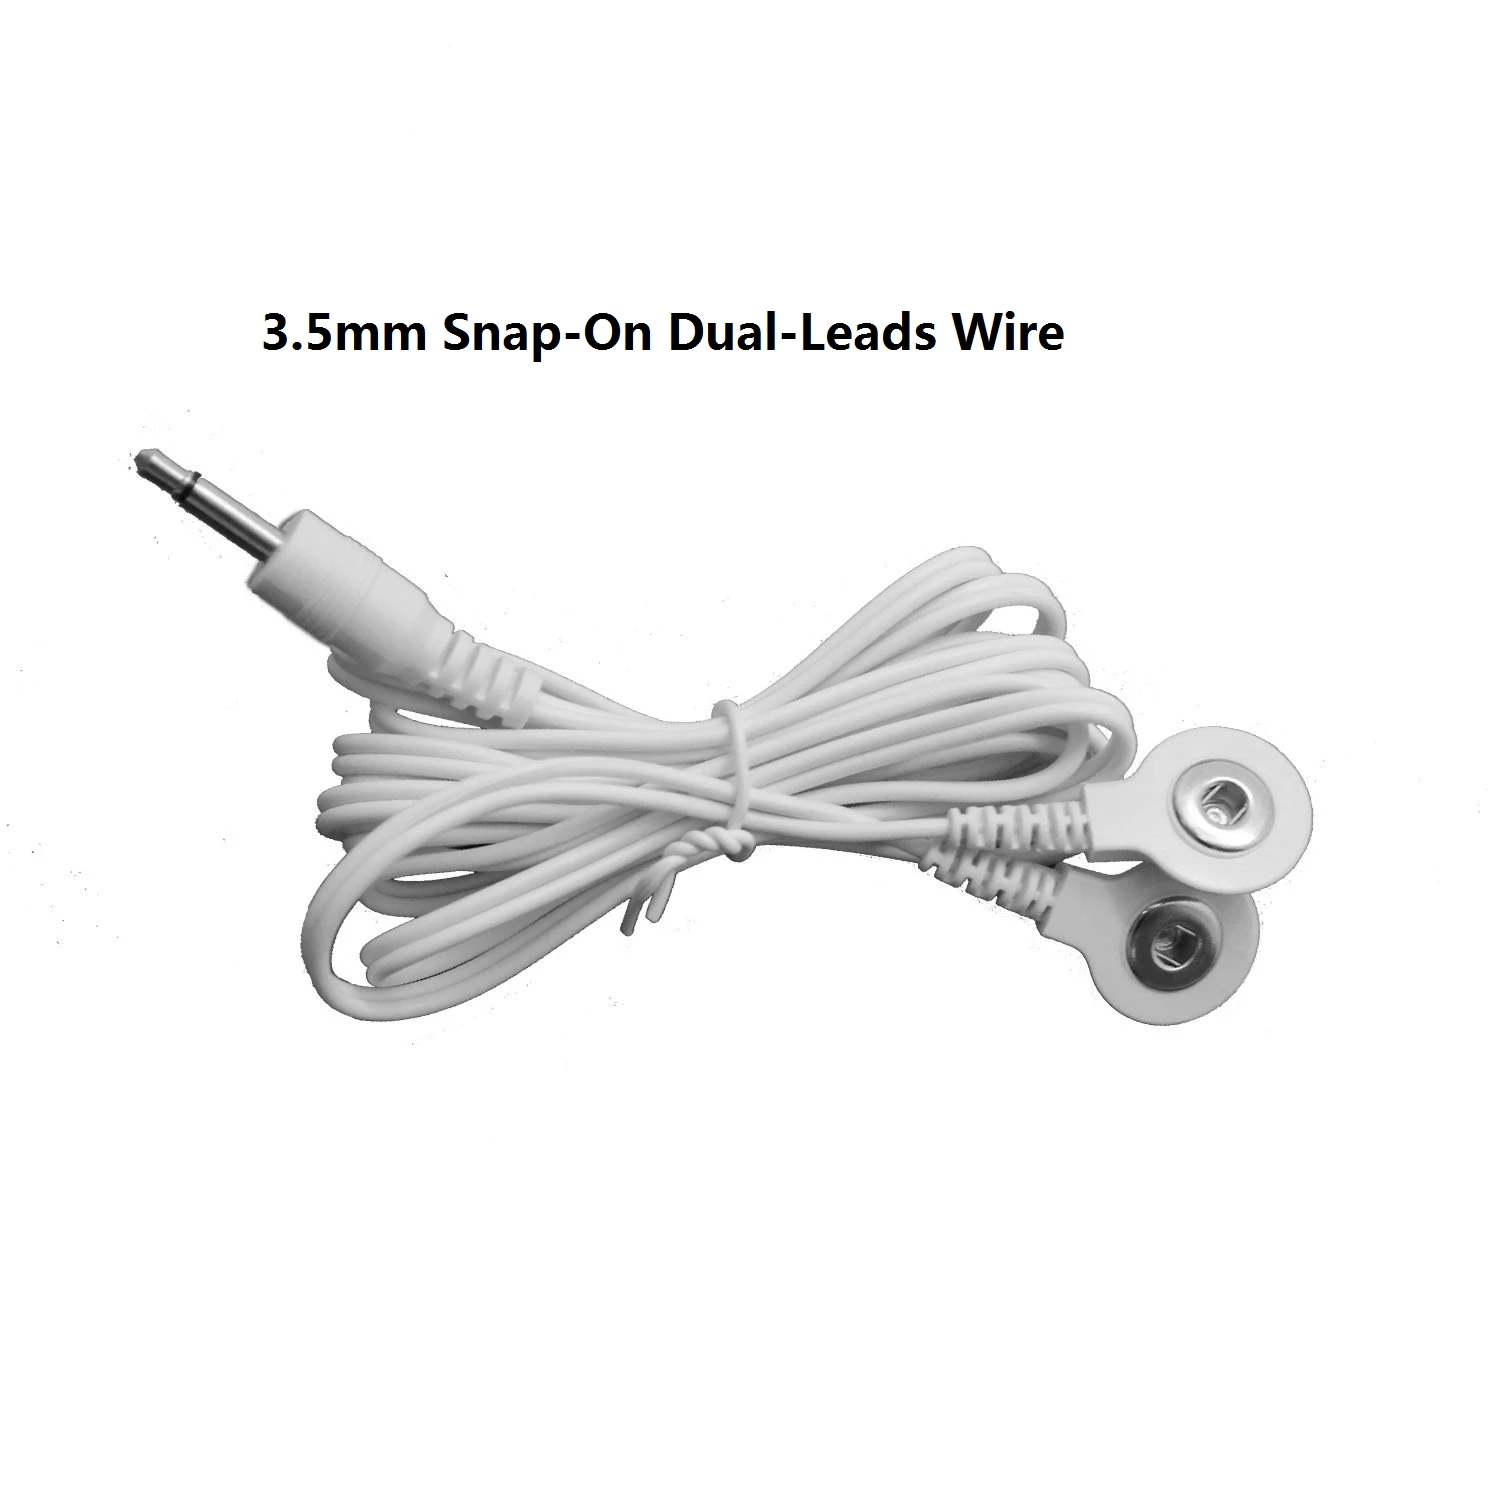 Snap-On Dual-Leads Wire